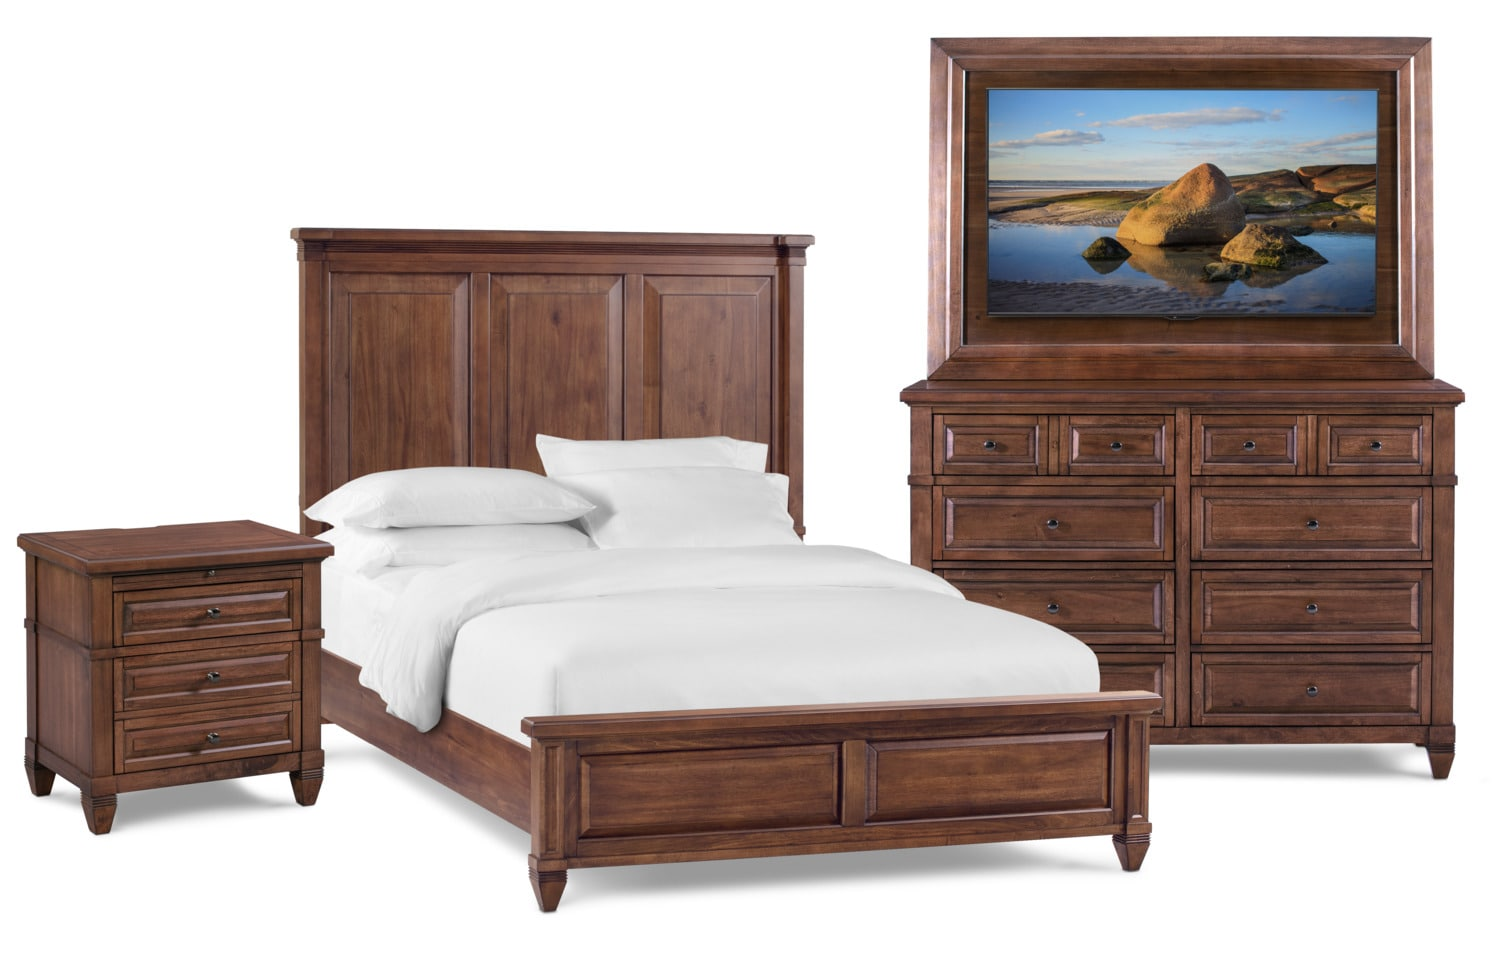 Rosalie 6-Piece Bedroom Set with TV Mount, Dresser and Mirror